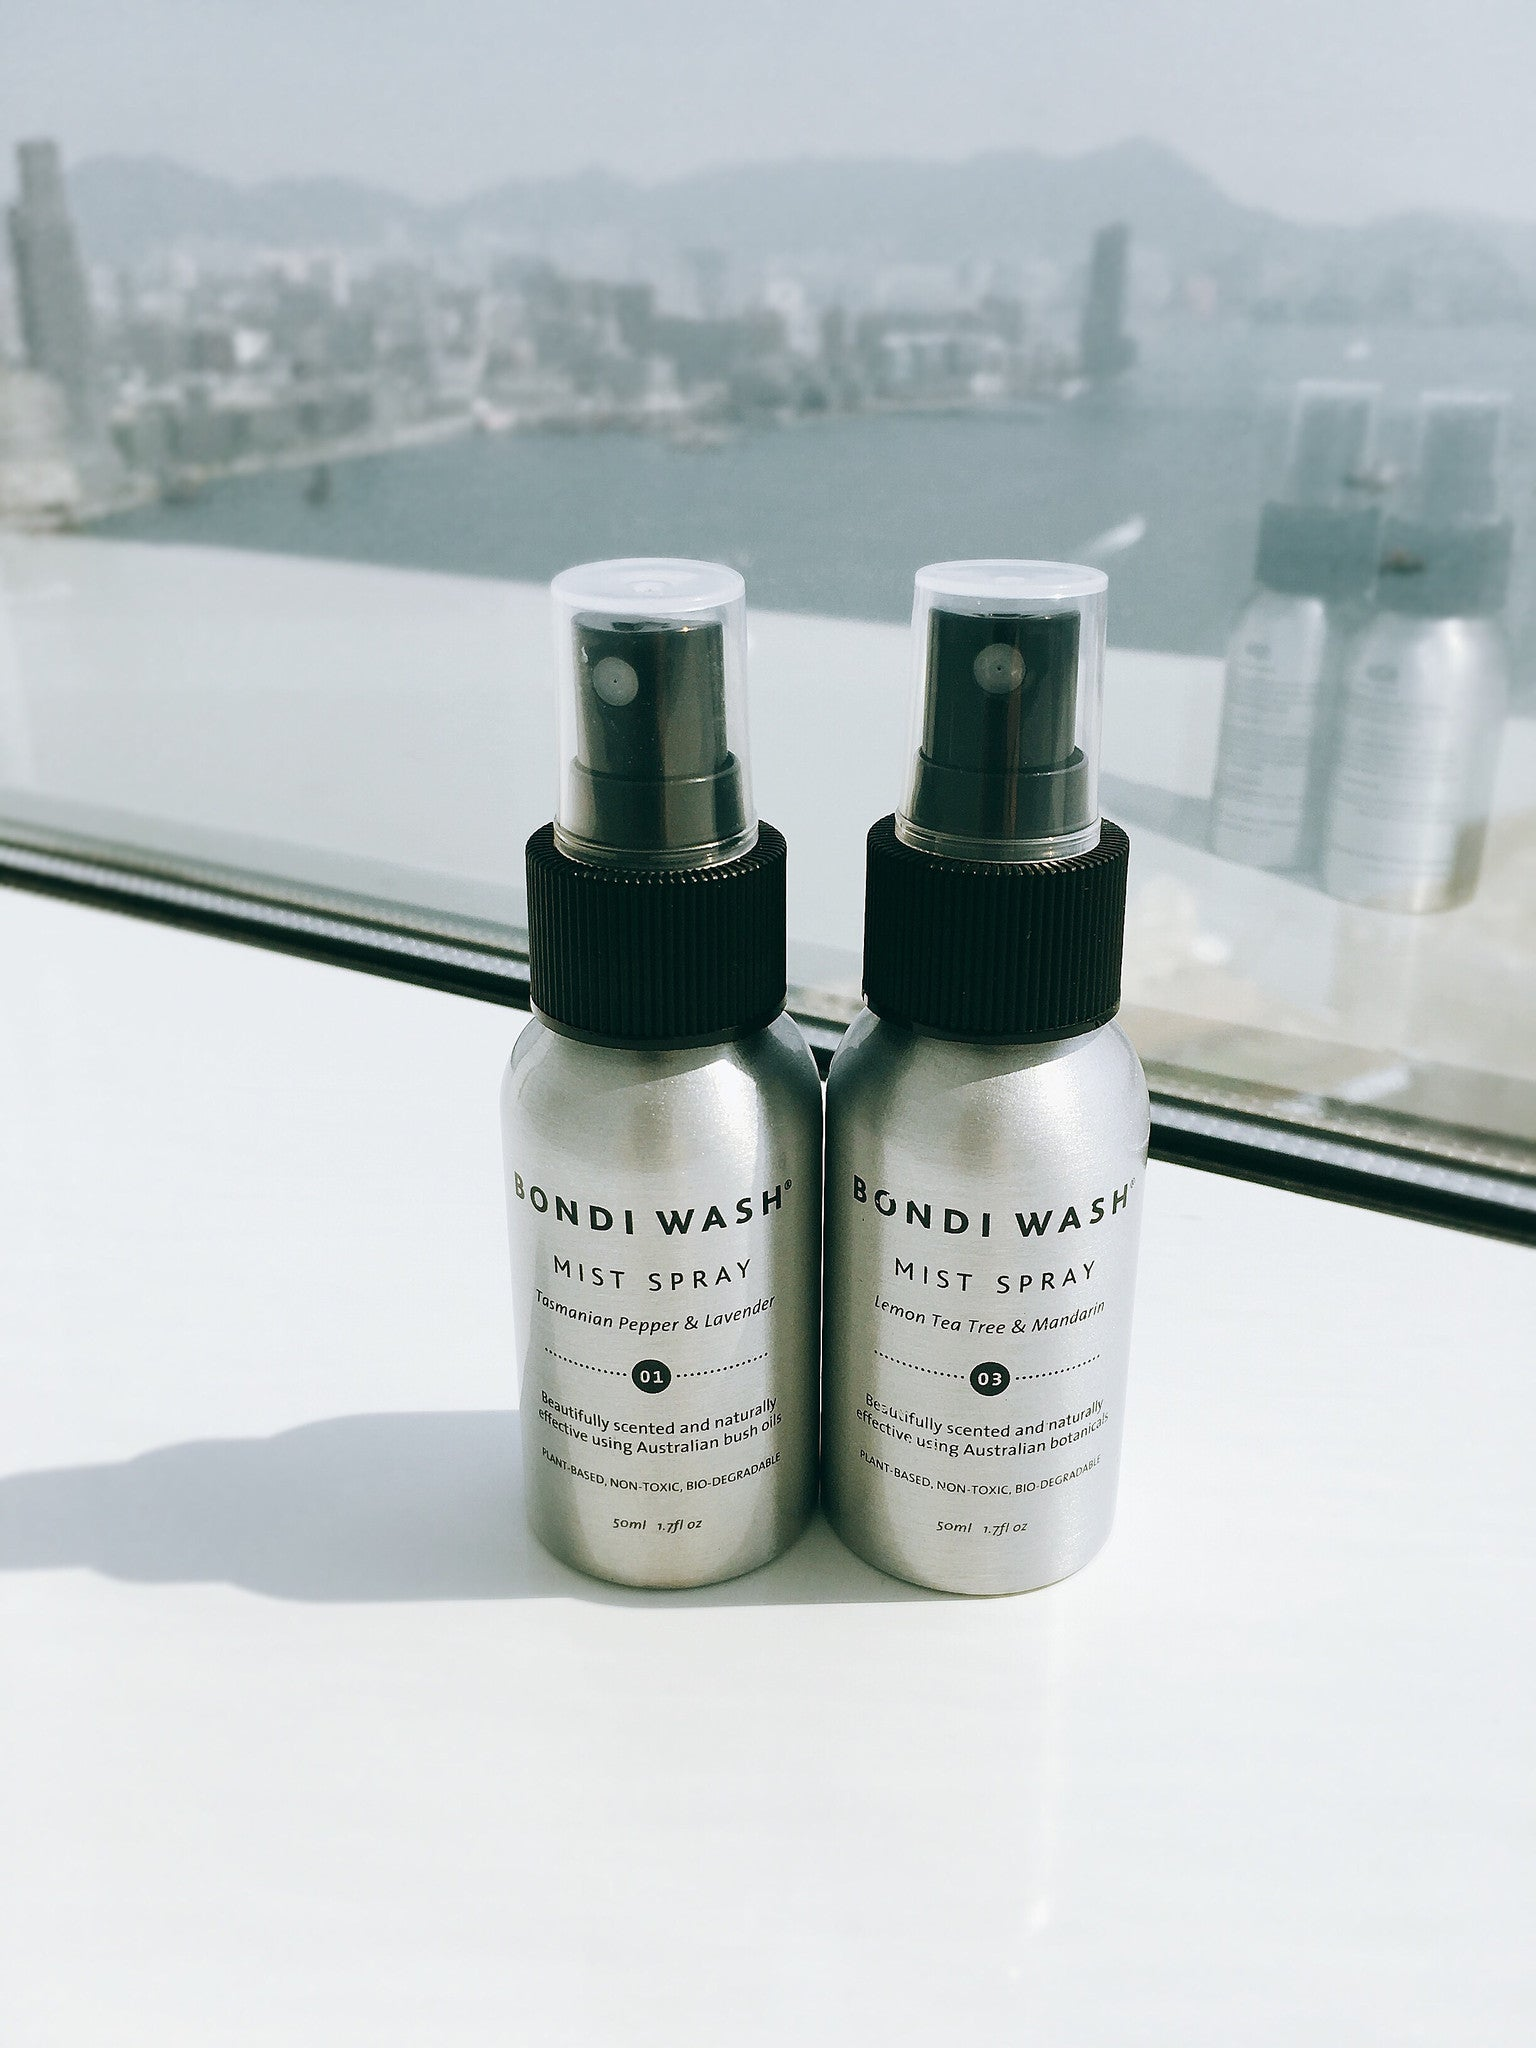 Bondi Wash - Mini Mist Spray Tasmanian Pepper & Lavender 50ml 塔斯曼尼亞胡椒薰衣草室內噴霧